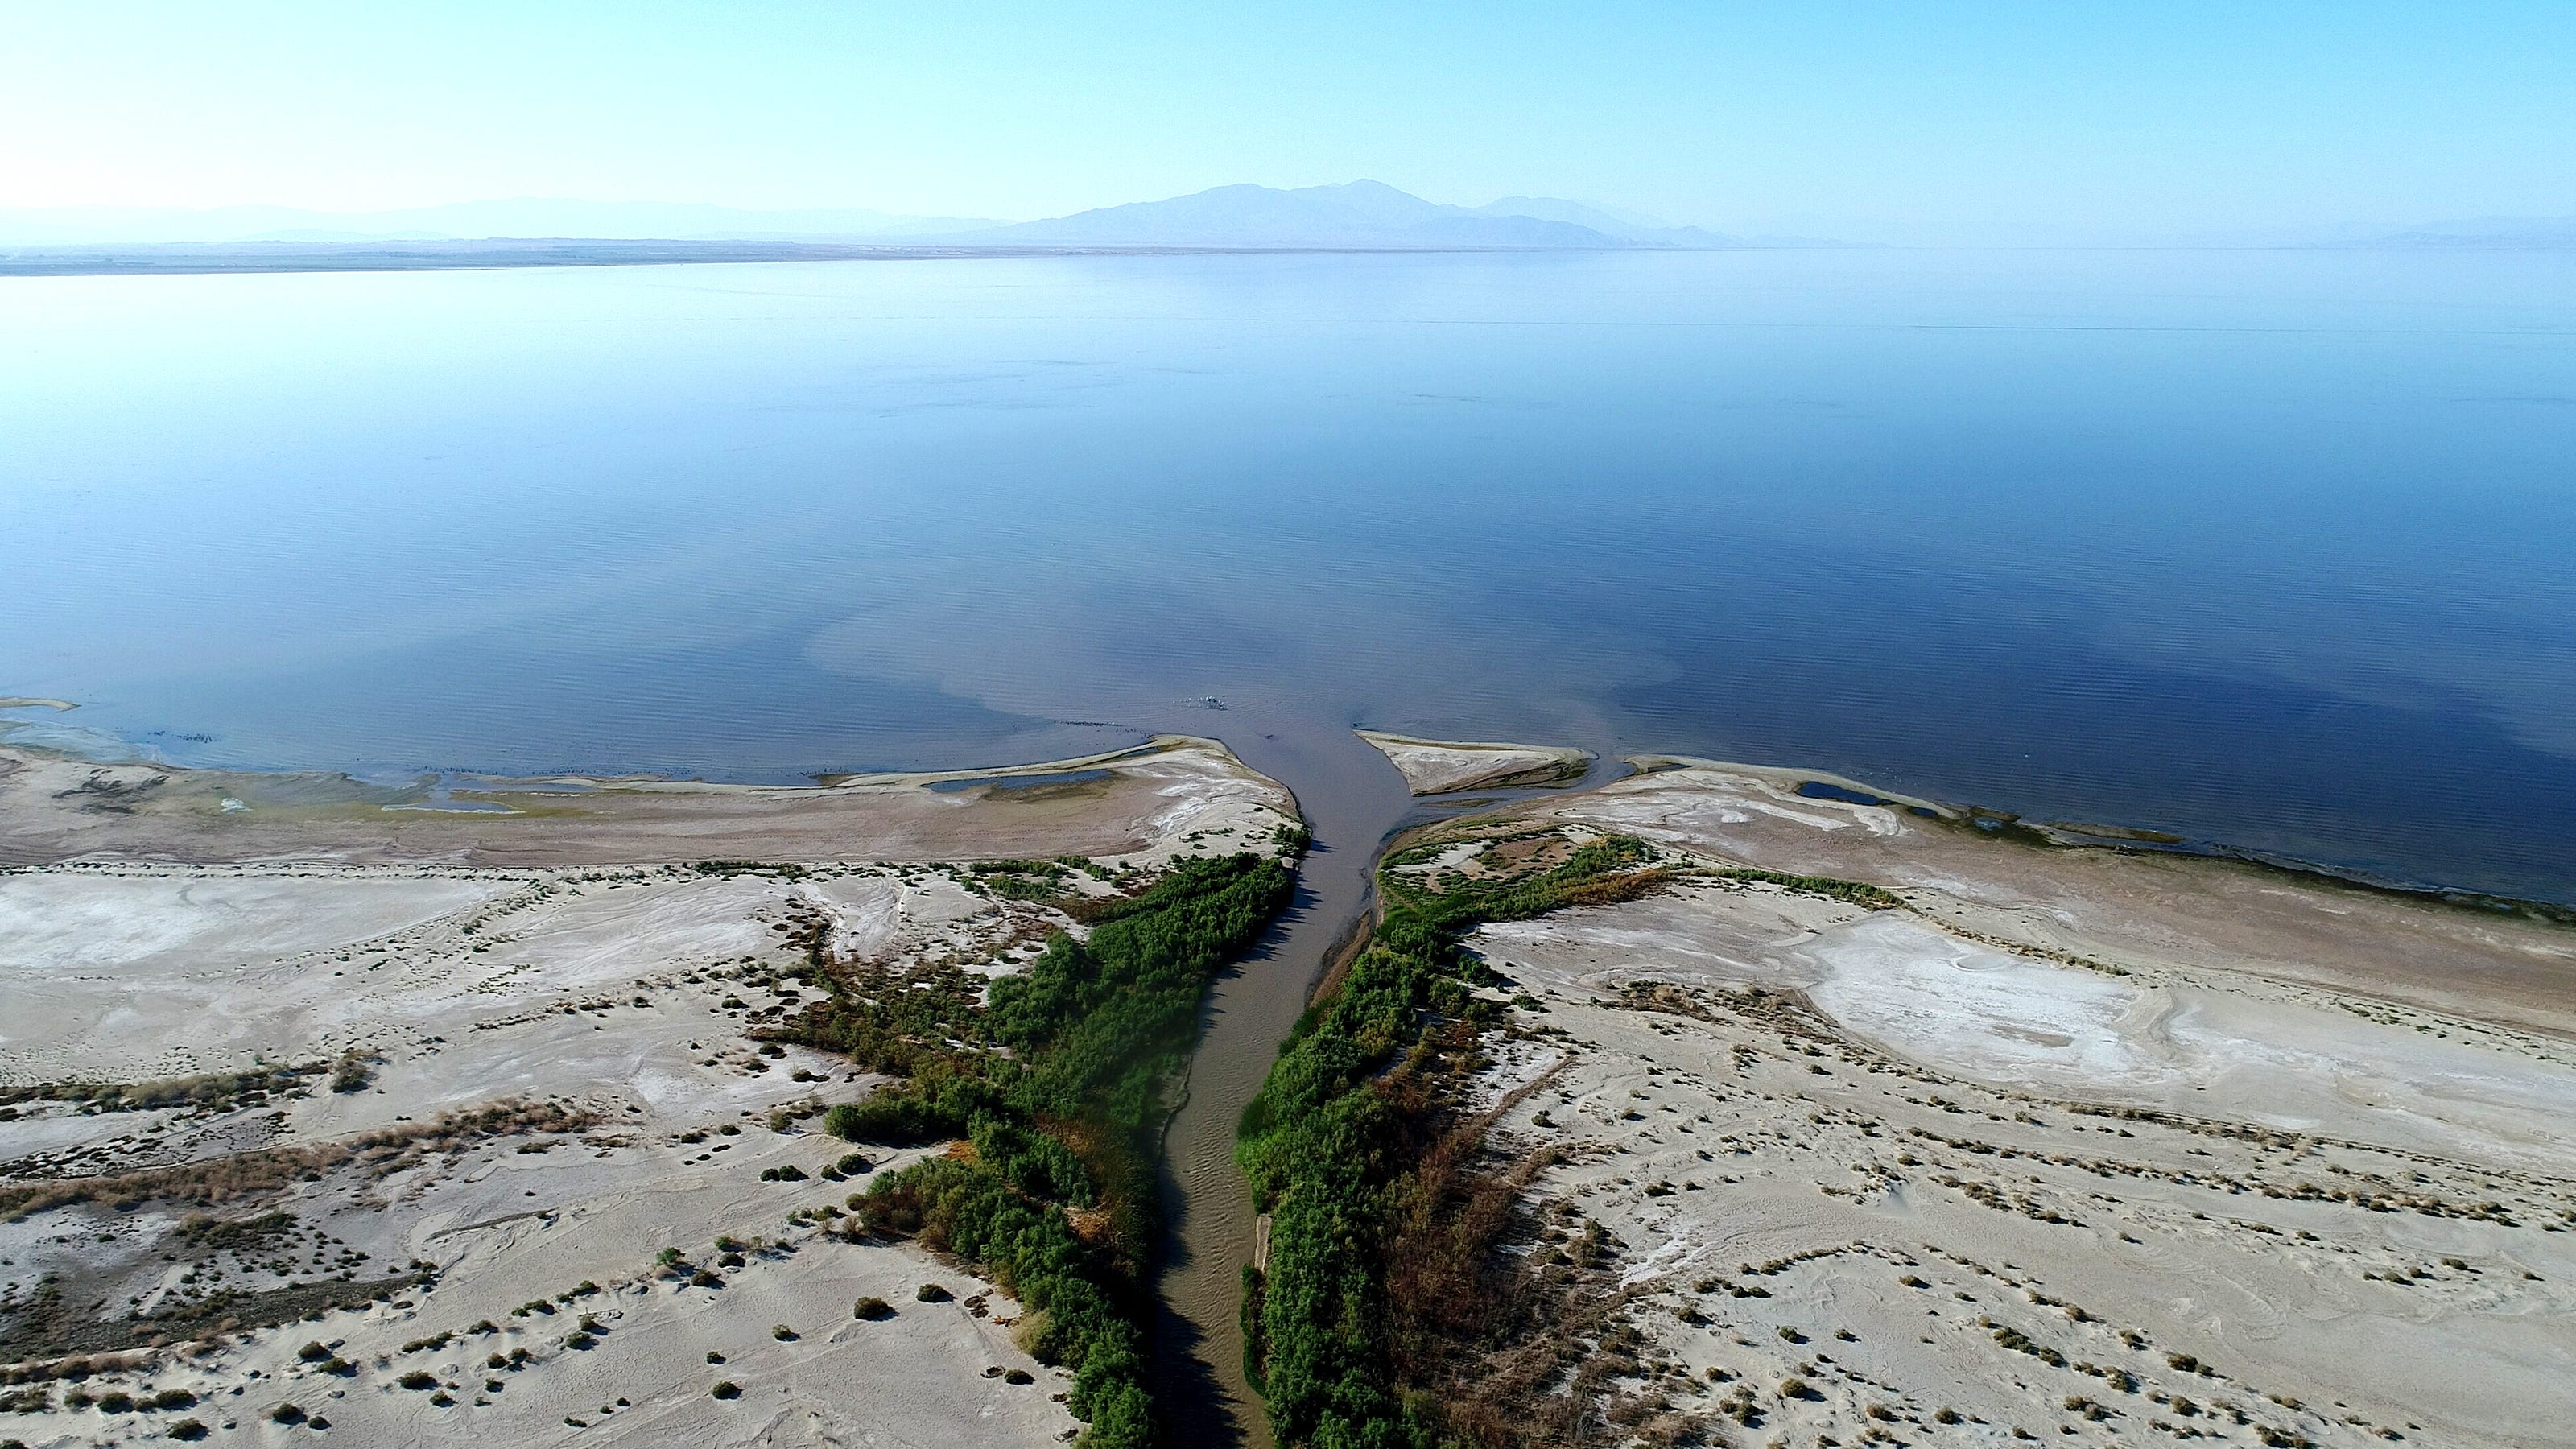 Voice: California must follow water quality rules in Salton